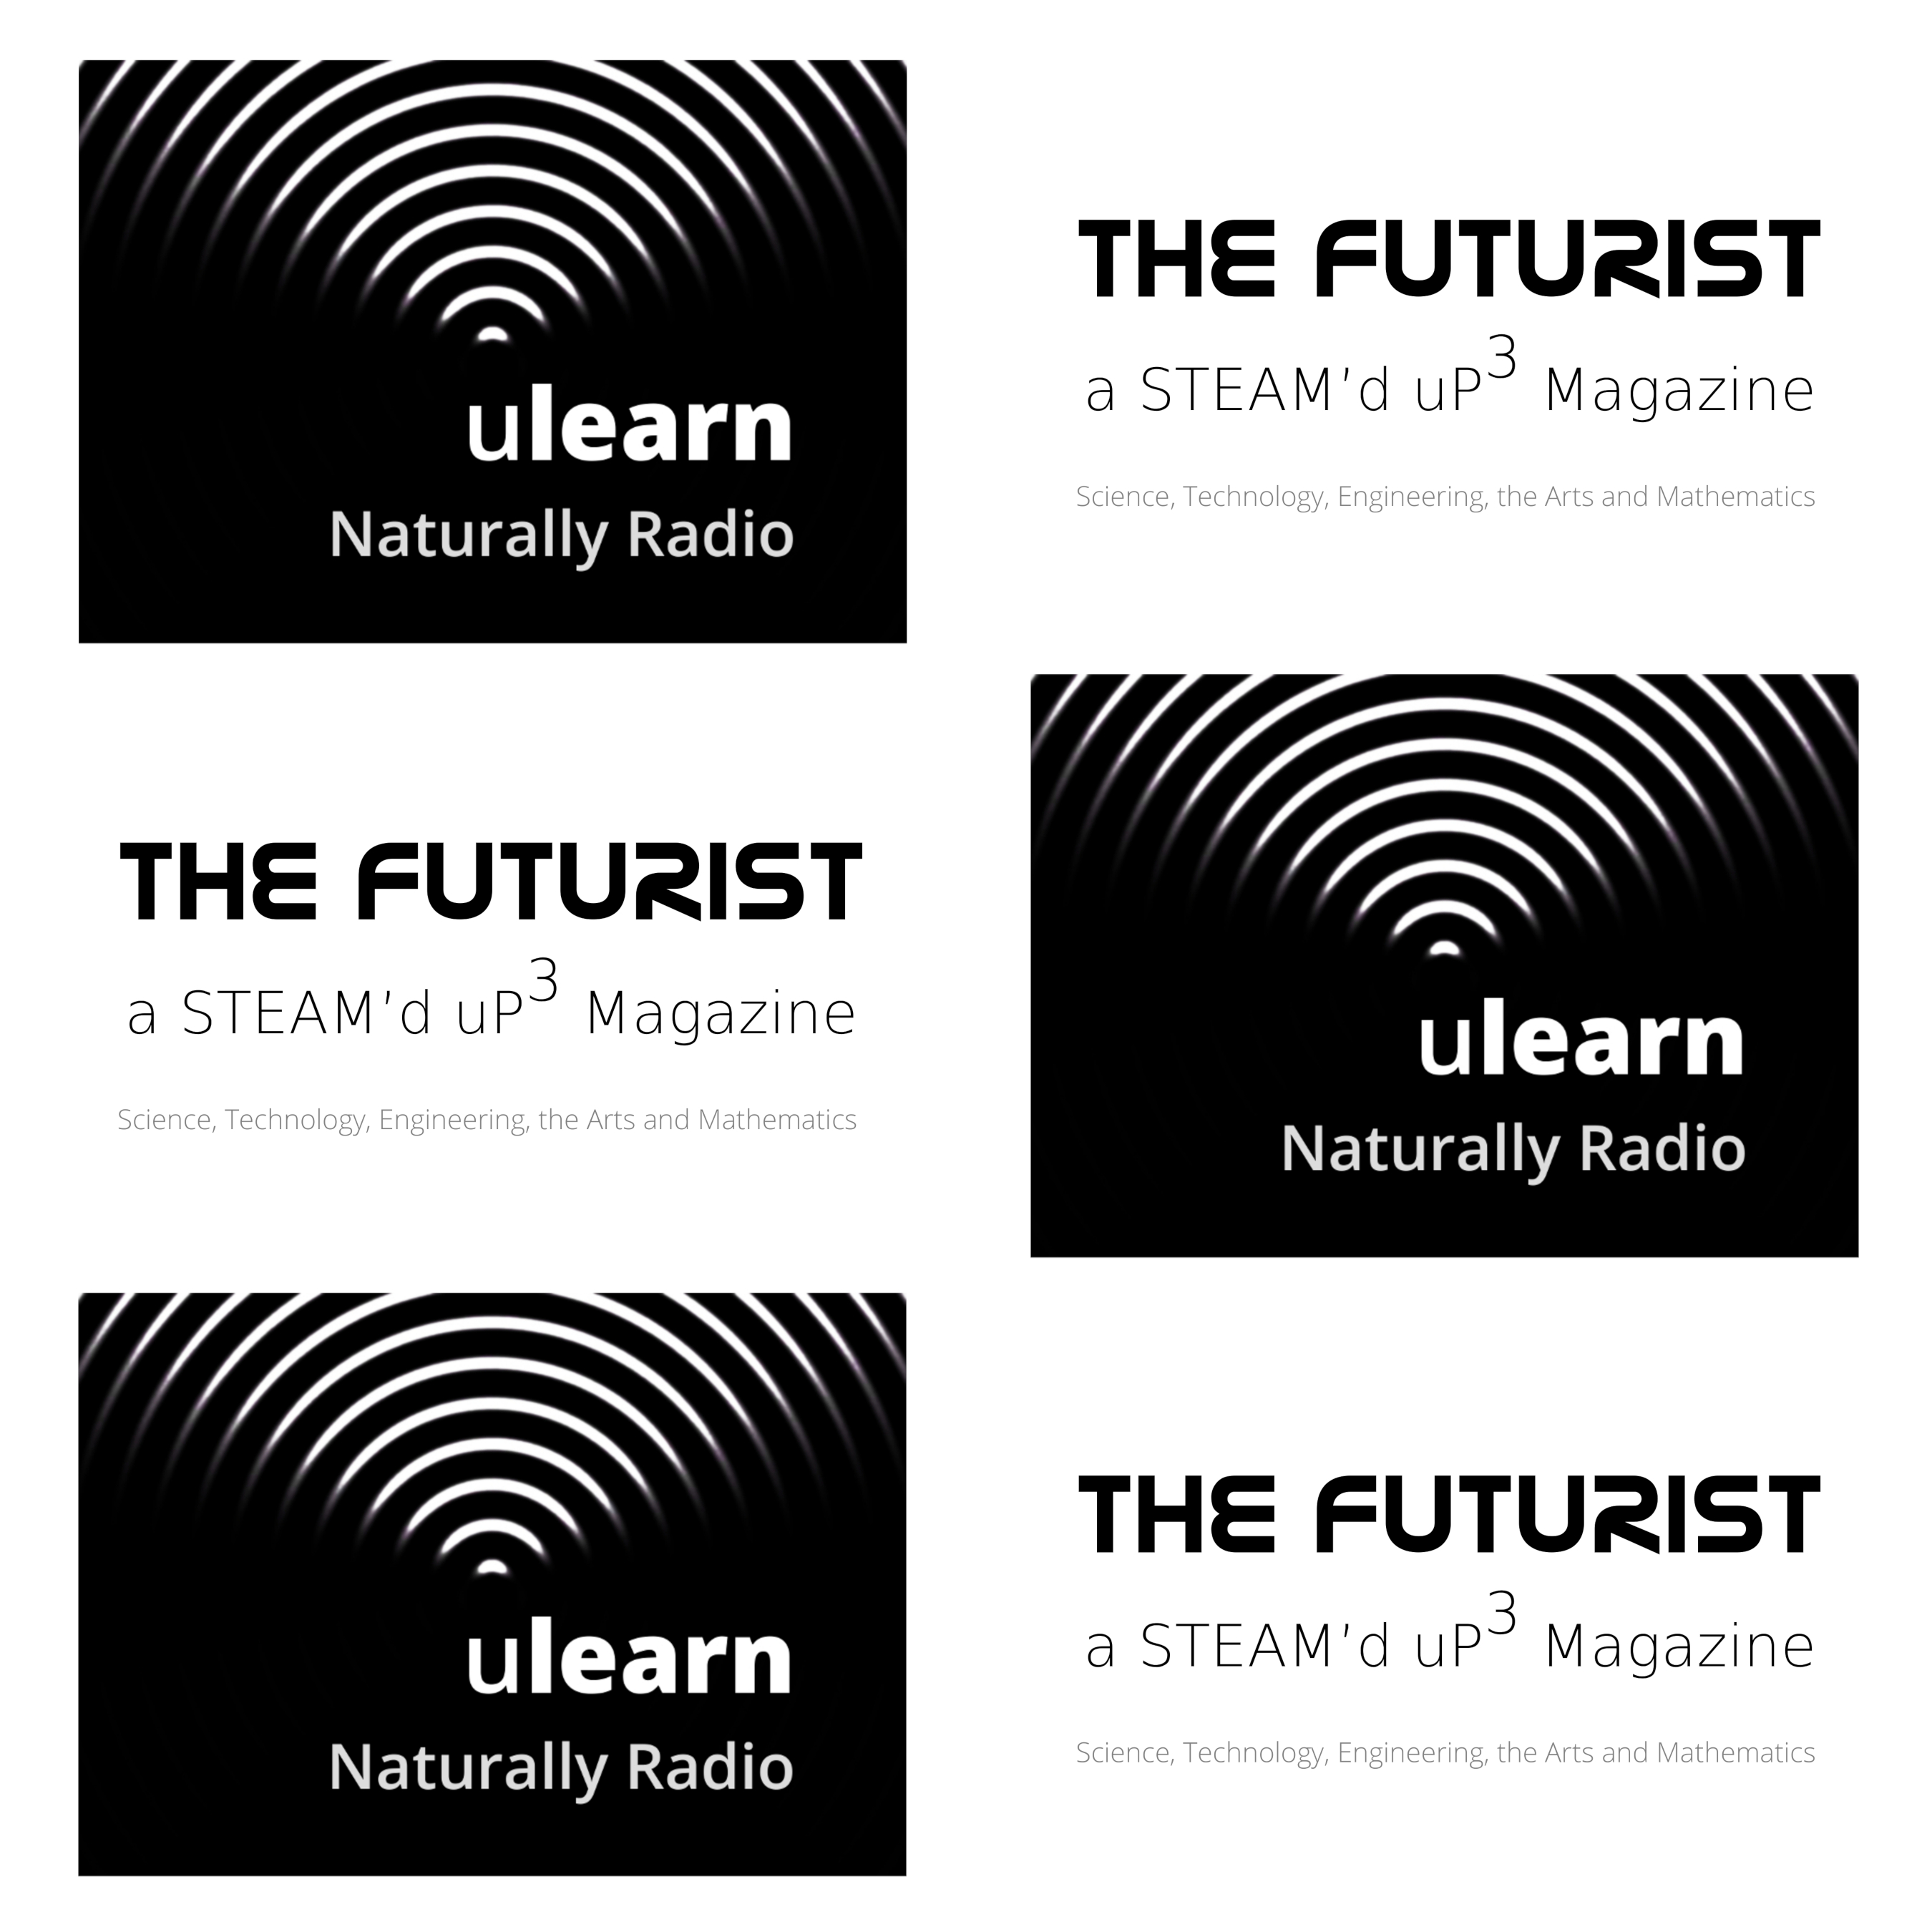 uLearn Naturally Radio